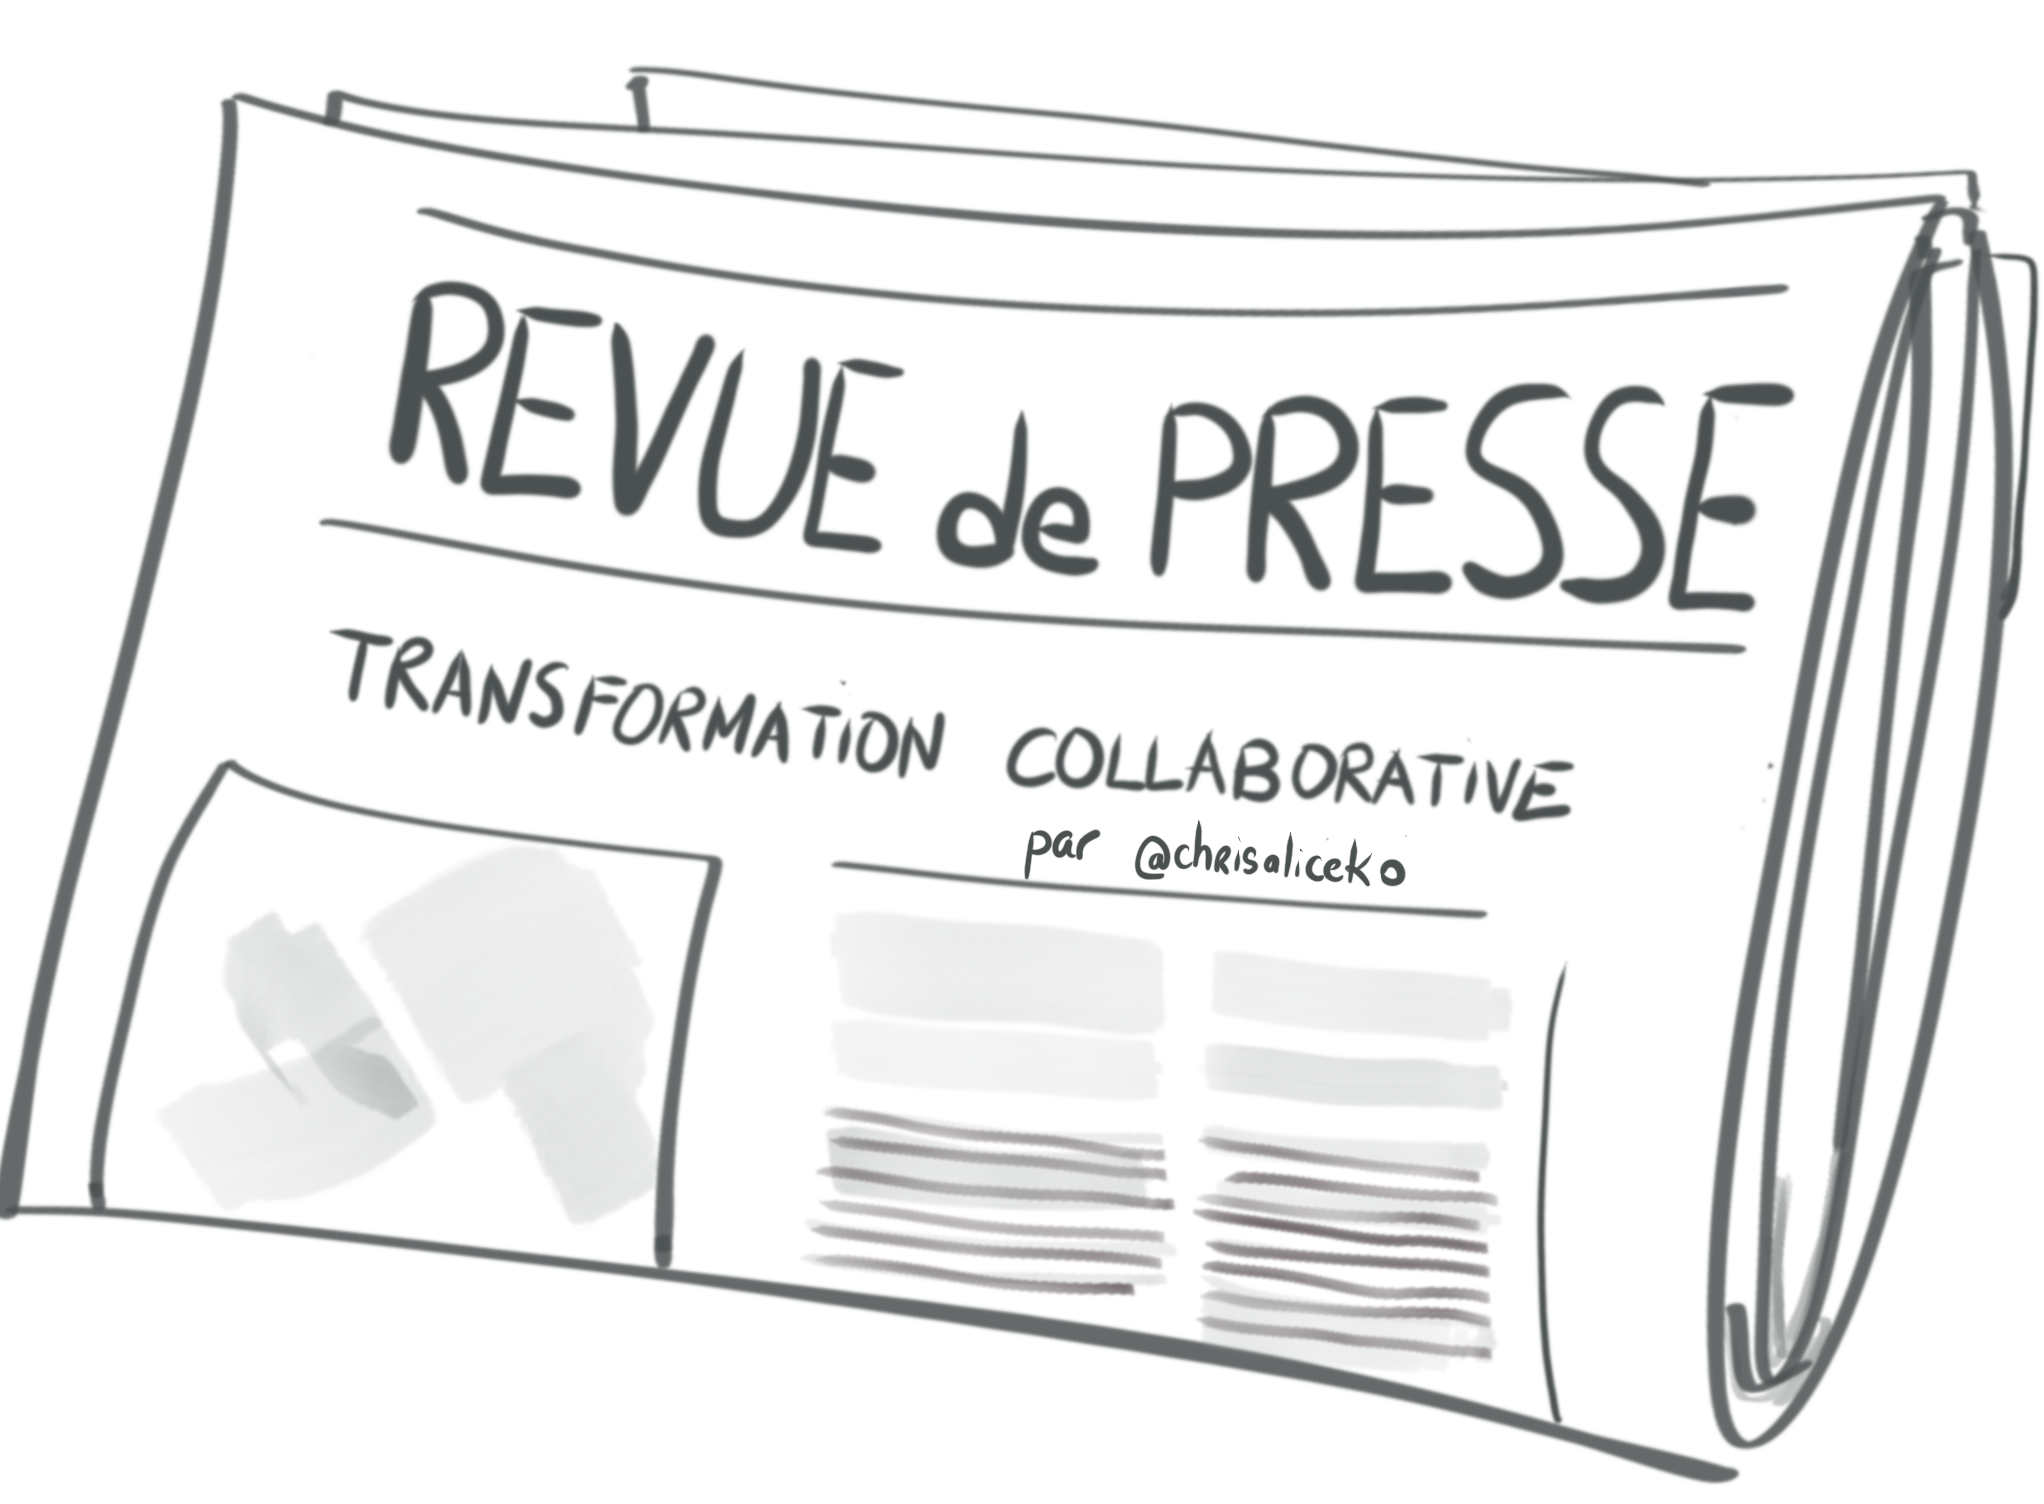 Revue de presse de la transformation collaborative icon